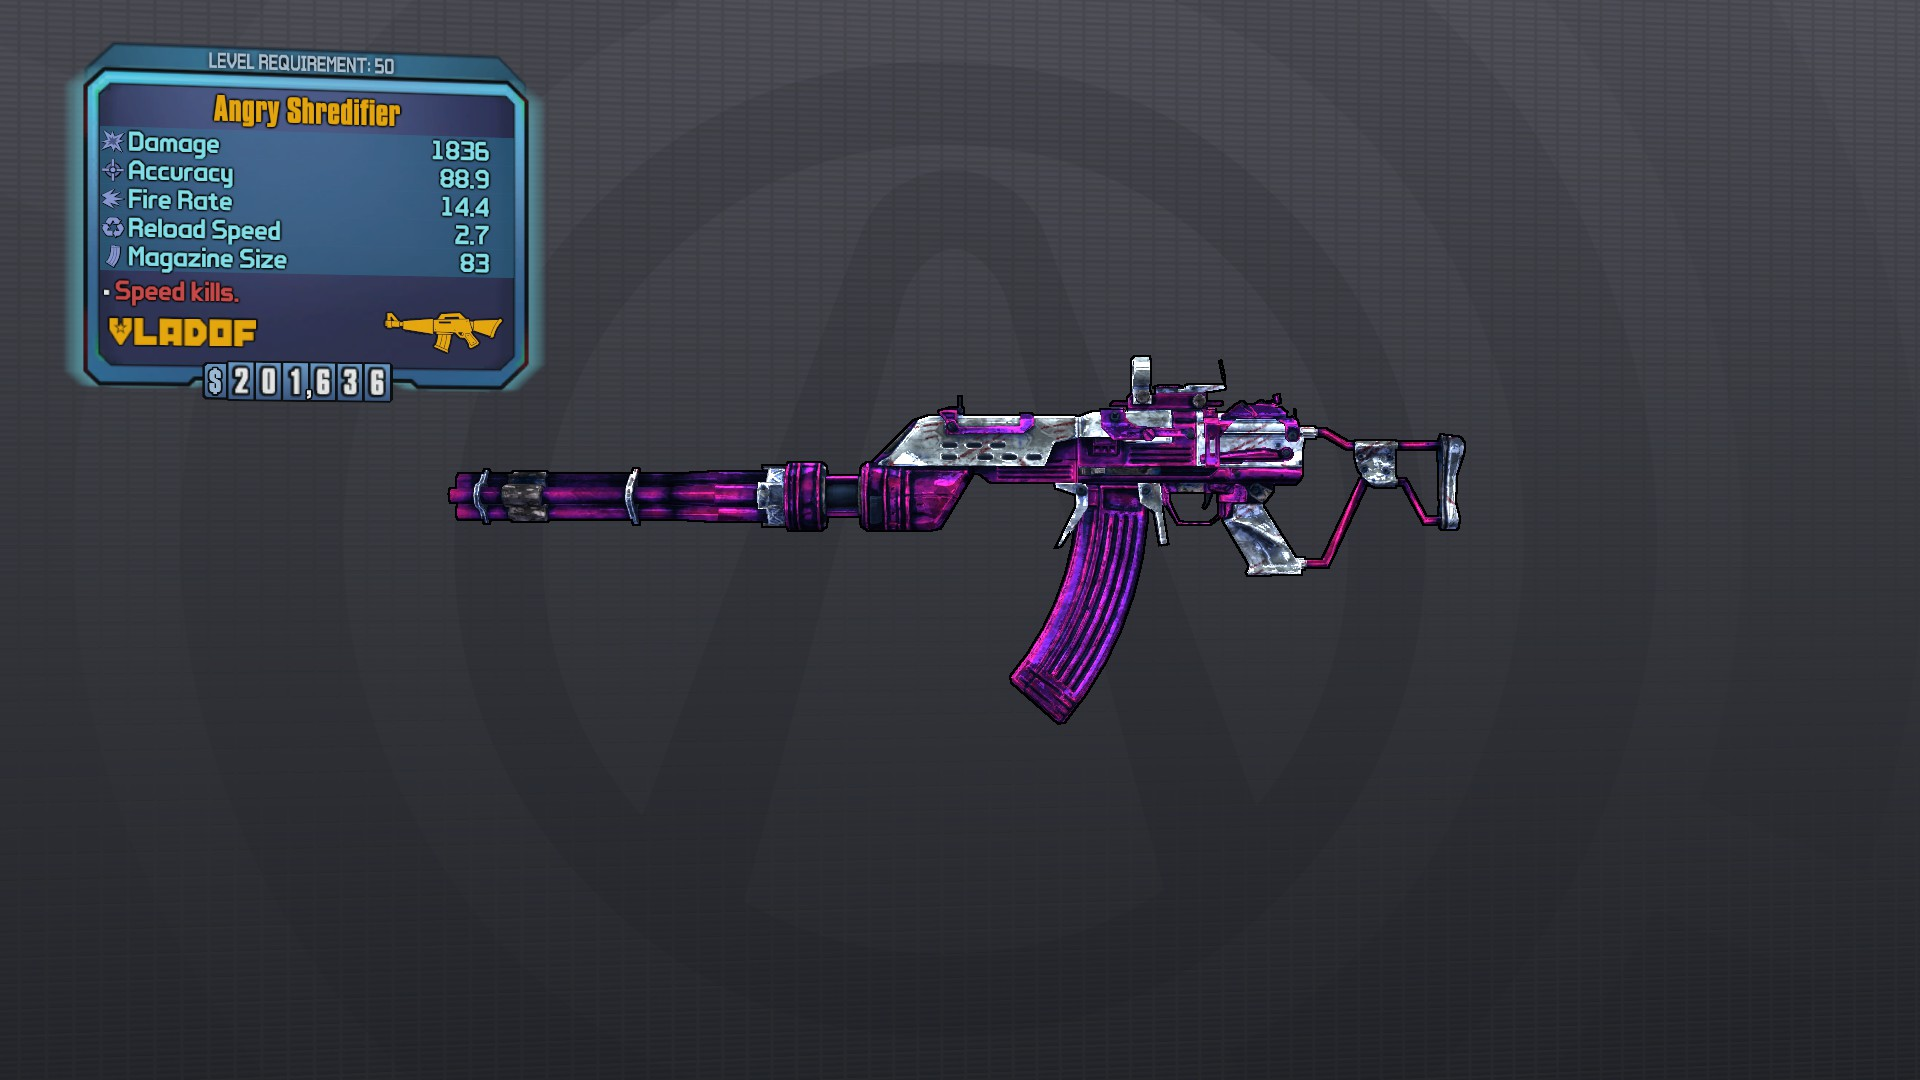 How do i unlock the last weapon slot in borderlands 2 - Florin